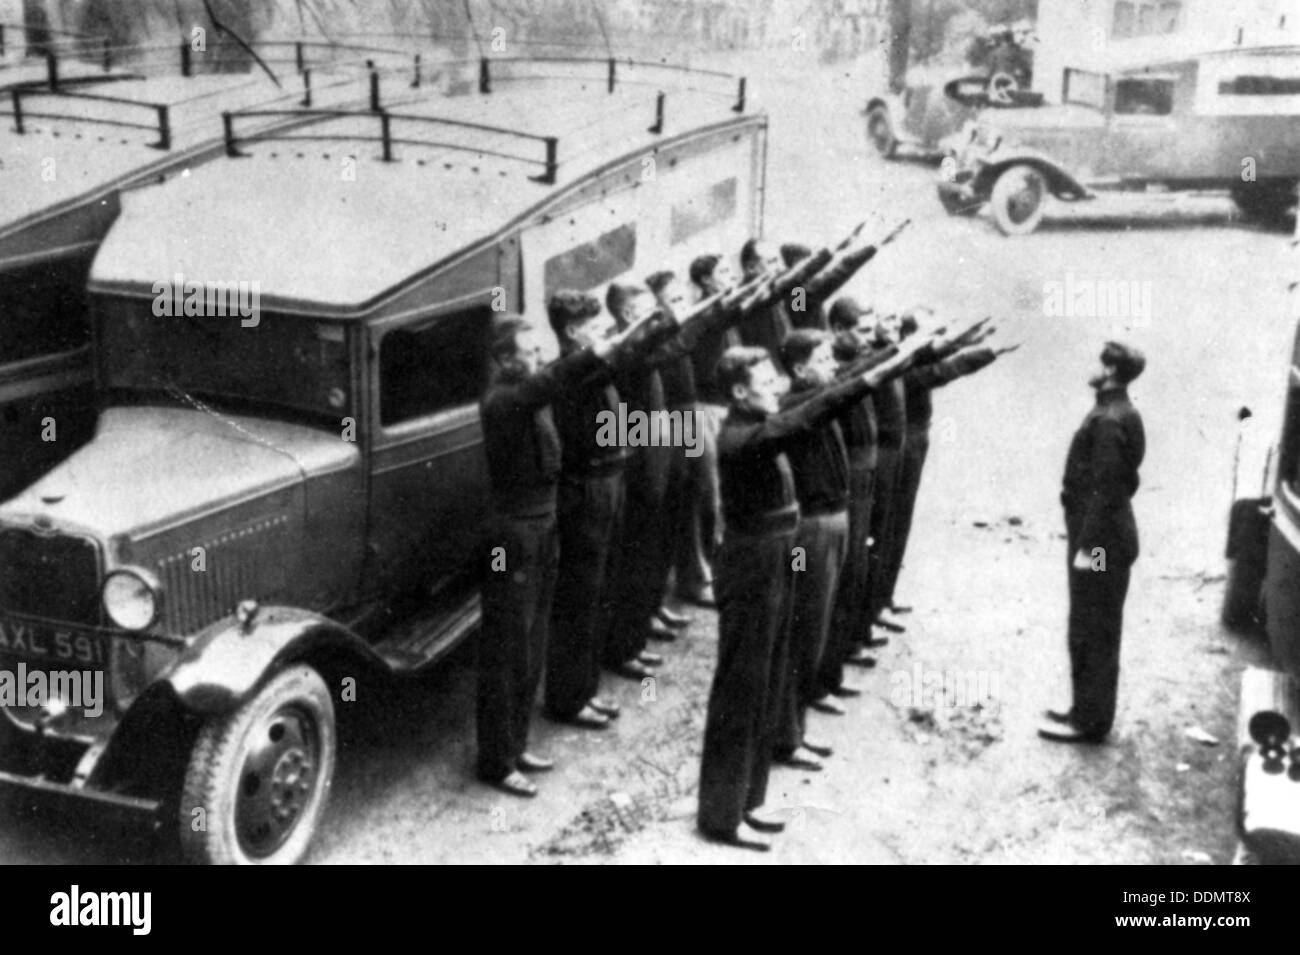 British Union of Fascists' Mobile Defence Squad parades its van at Black House, Chelsea, c1934. - Stock Image